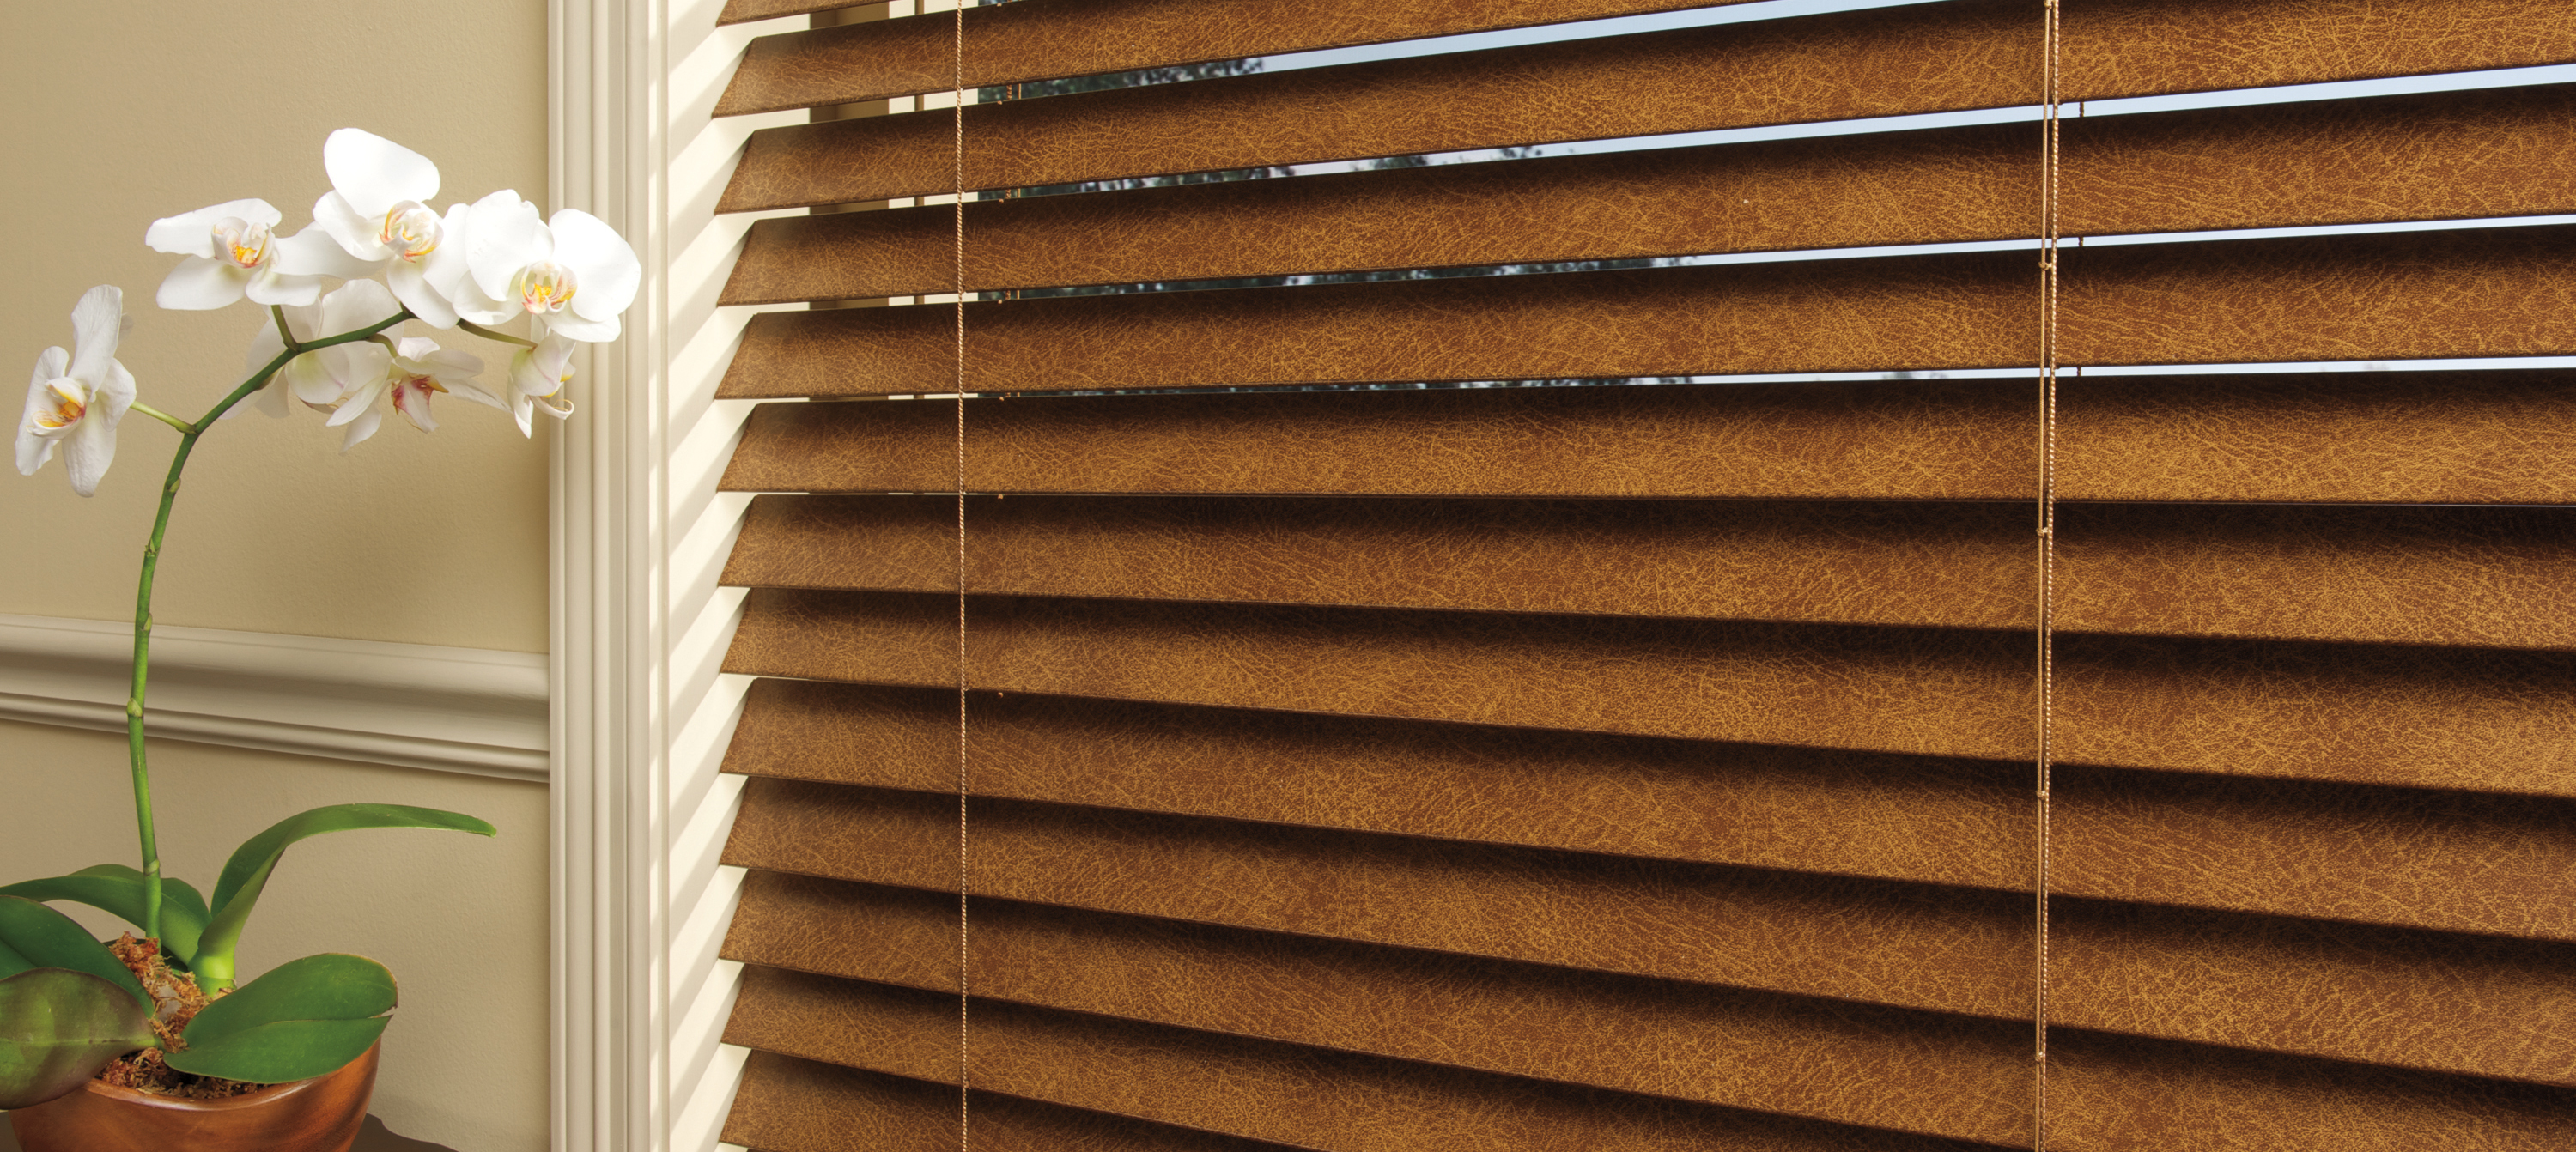 Motorized Blinds Nyc Motorized Wood Blinds Nyc